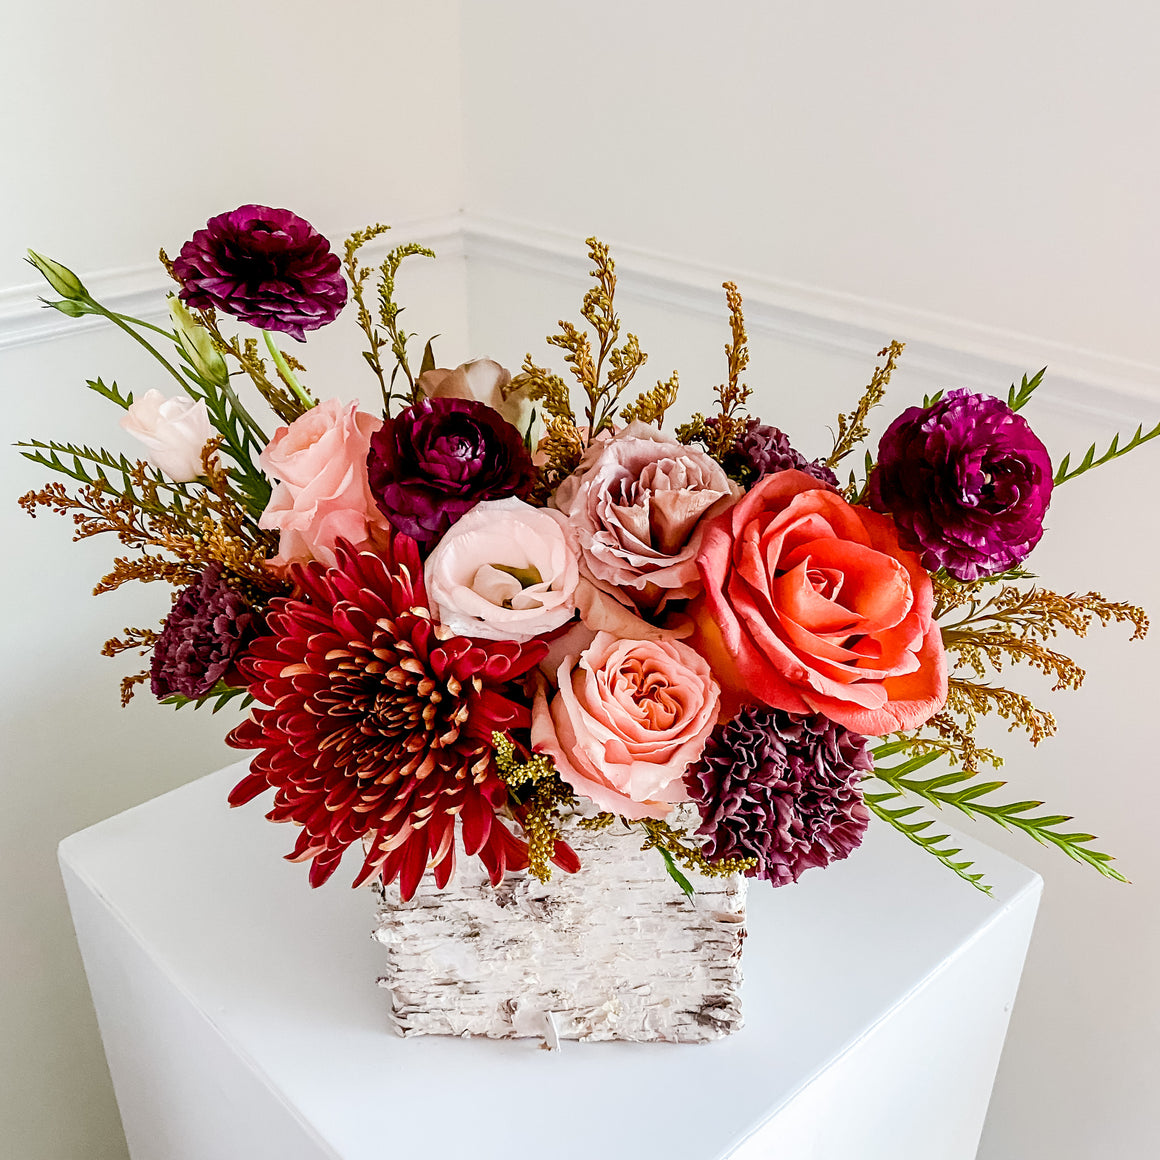 Thanksgiving Virtual Flower Workshop - Nov. 19, 2020 @ 7pm CST